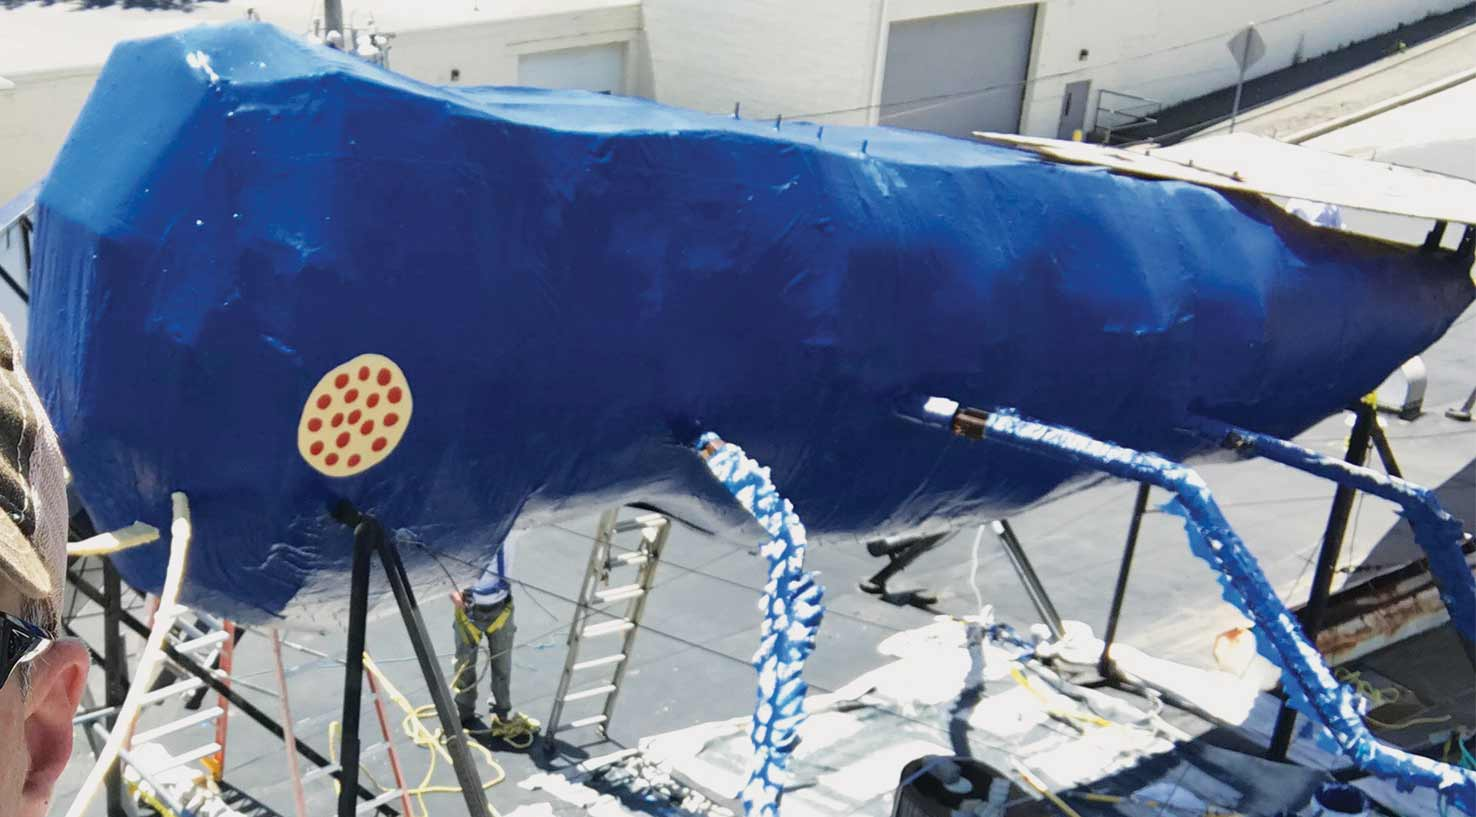 the newly restored Big Blue Bug, 58 foot long mascot of a pest control company in Providence, Rhode Island since 1980